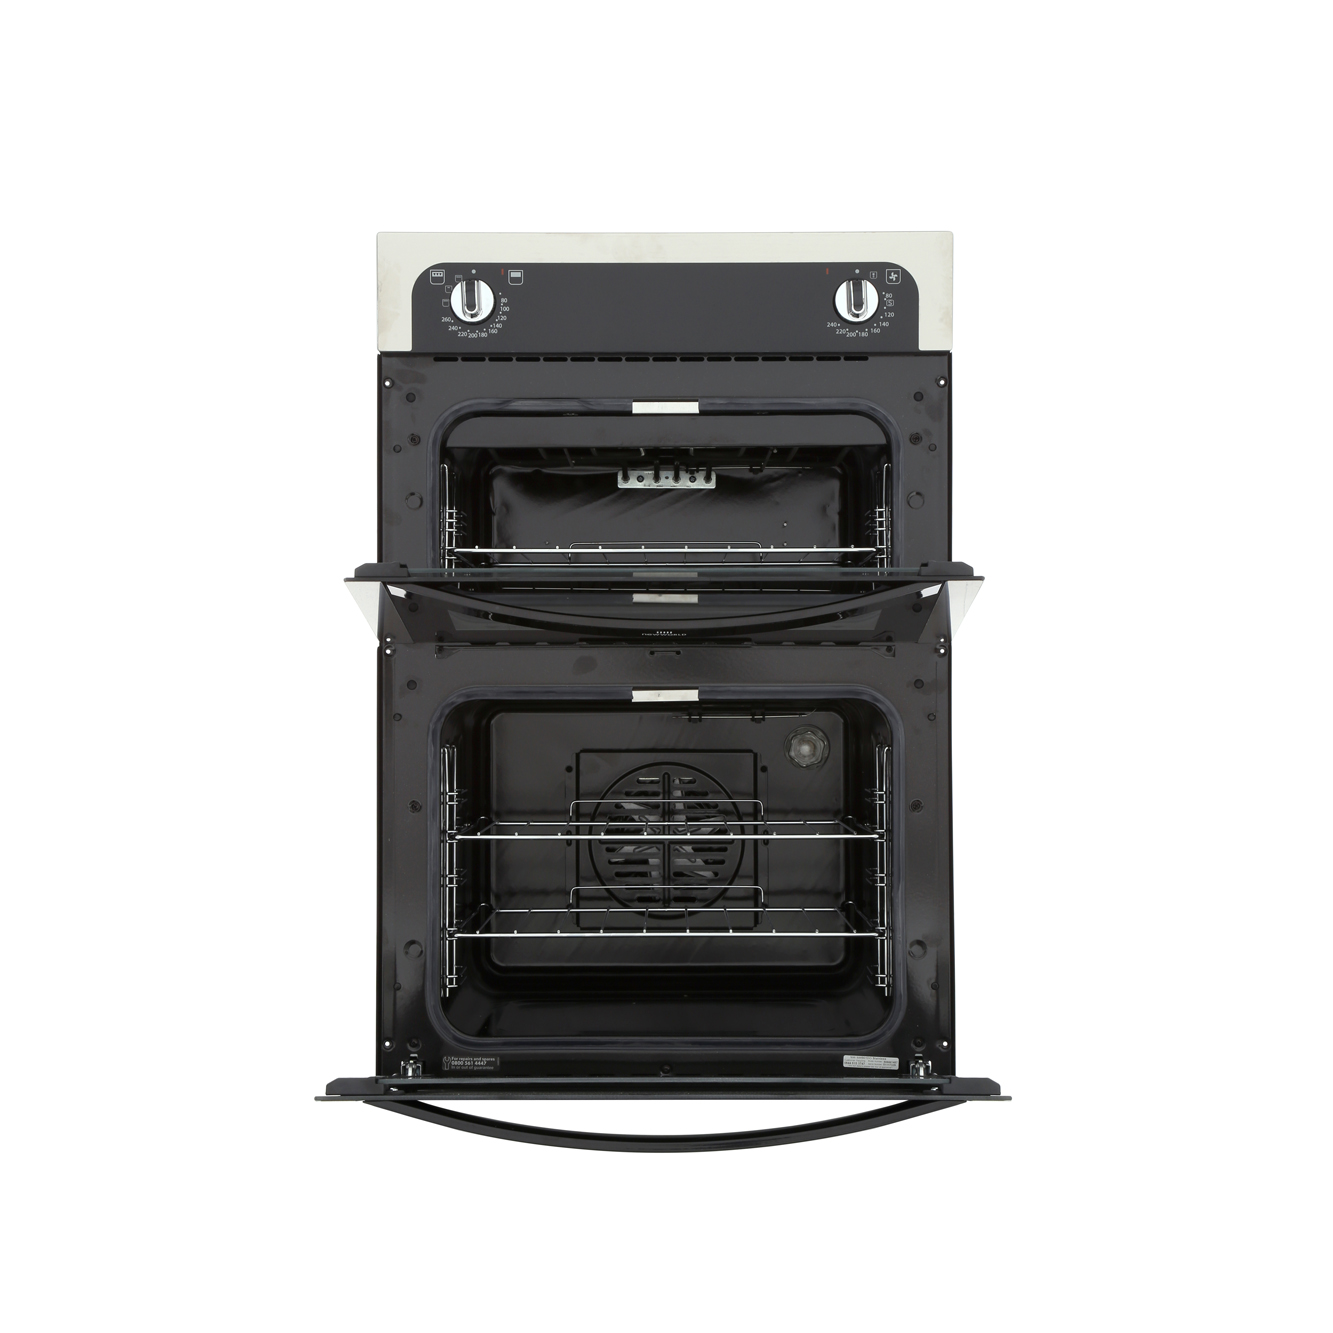 New World Newwpack11 Double Built In Electric Oven Gas